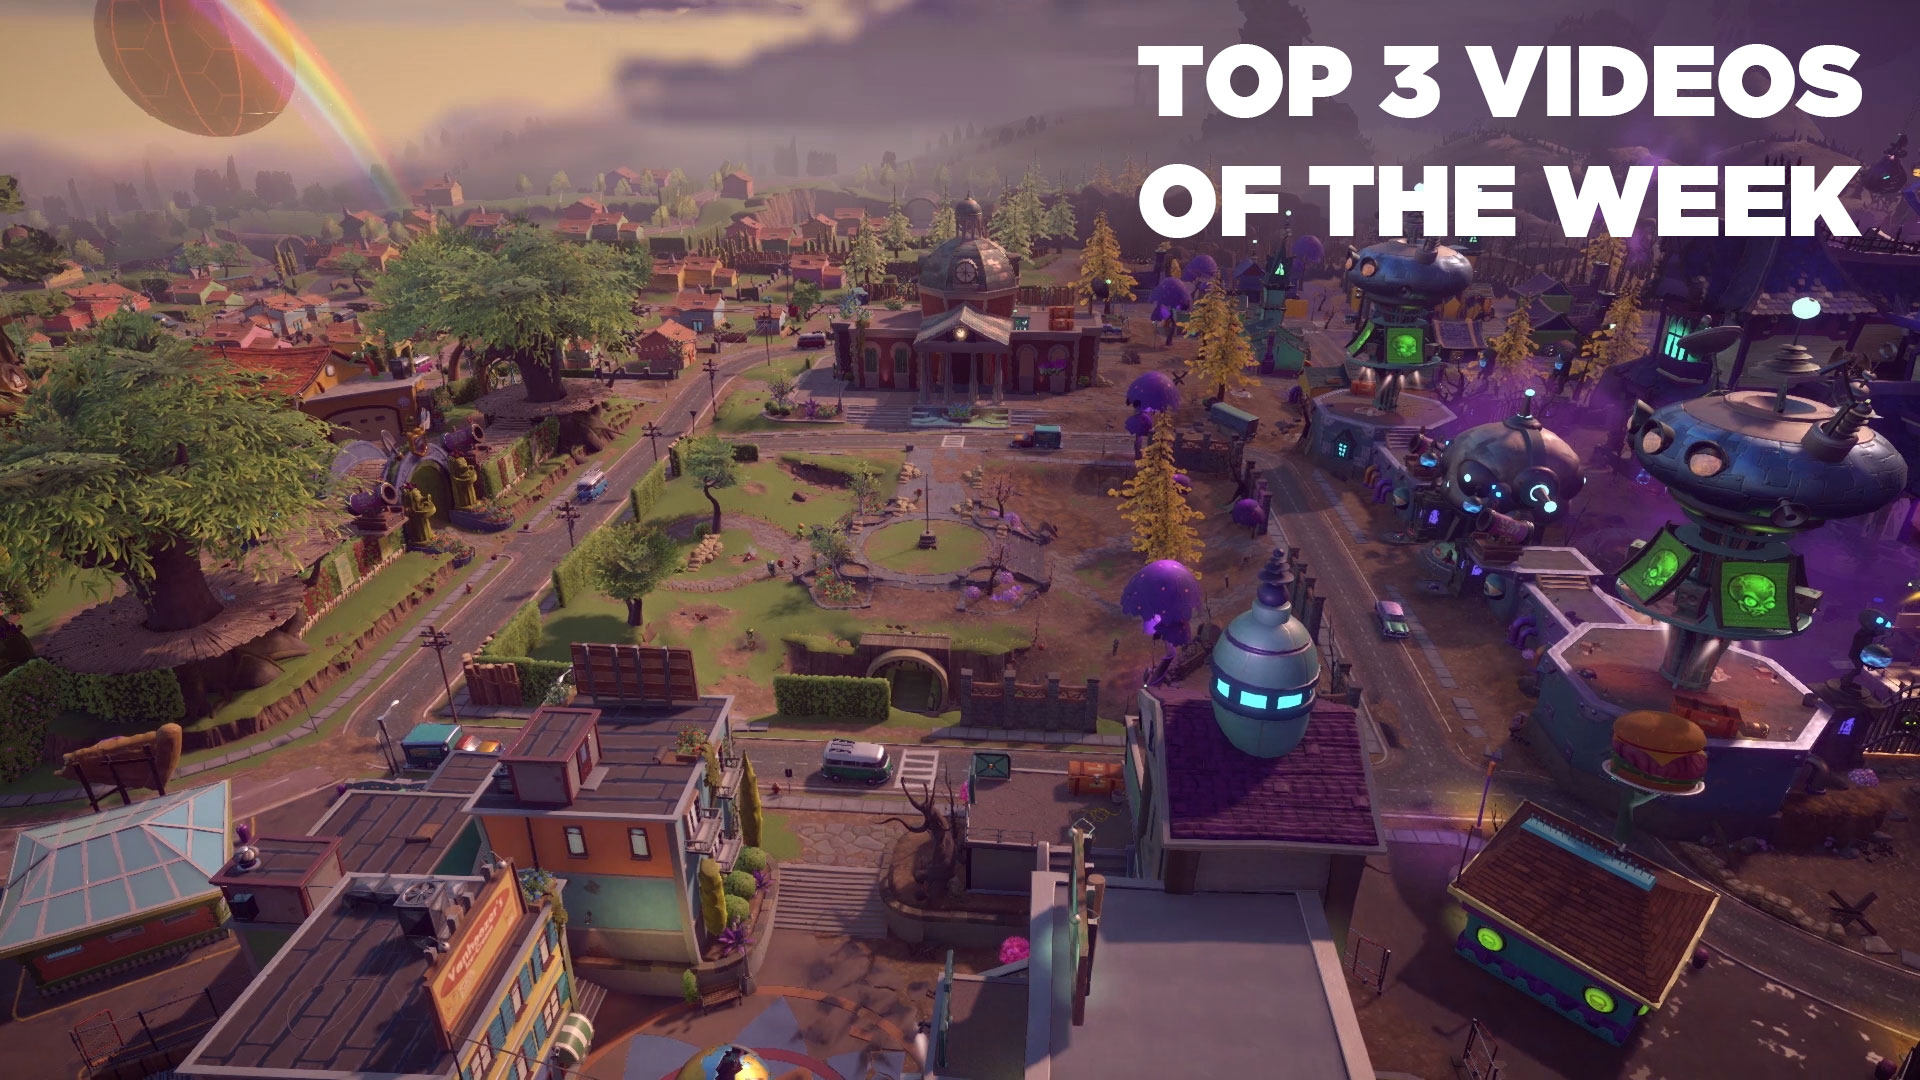 Top 3 Plants Vs Zombies Garden Warfare 2 Videos Of The